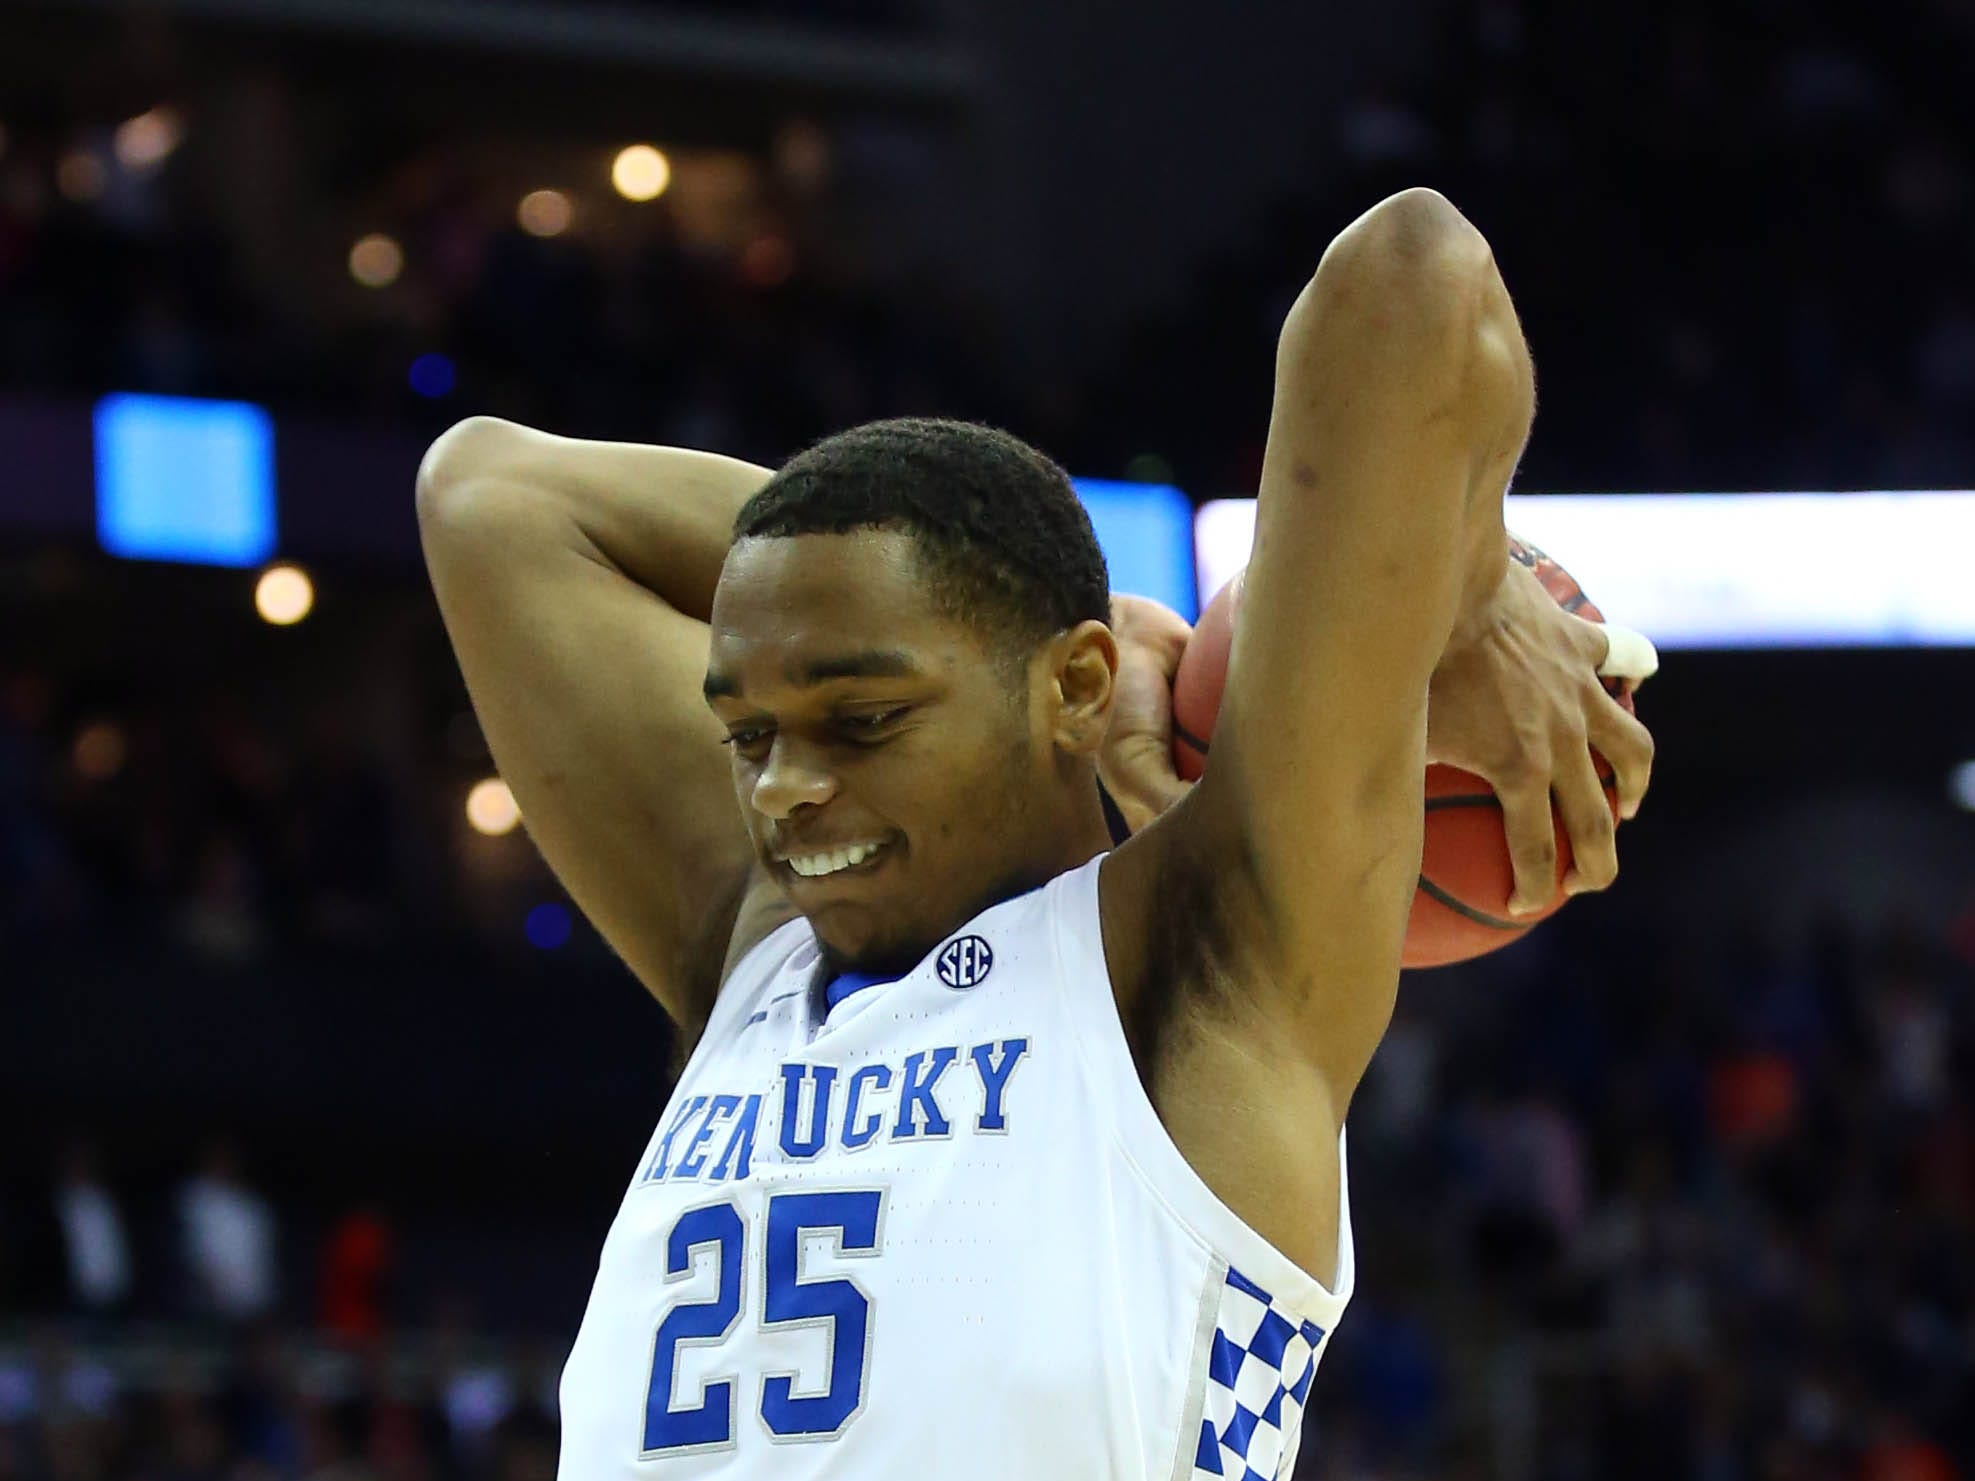 Mar 31, 2019; Kansas City, MO, United States; Kentucky Wildcats forward PJ Washington (25) reacts against the Auburn Tigers during overtime in the championship game of the midwest regional of the 2019 NCAA Tournament at Sprint Center. Mandatory Credit: Jay Biggerstaff-USA TODAY Sports